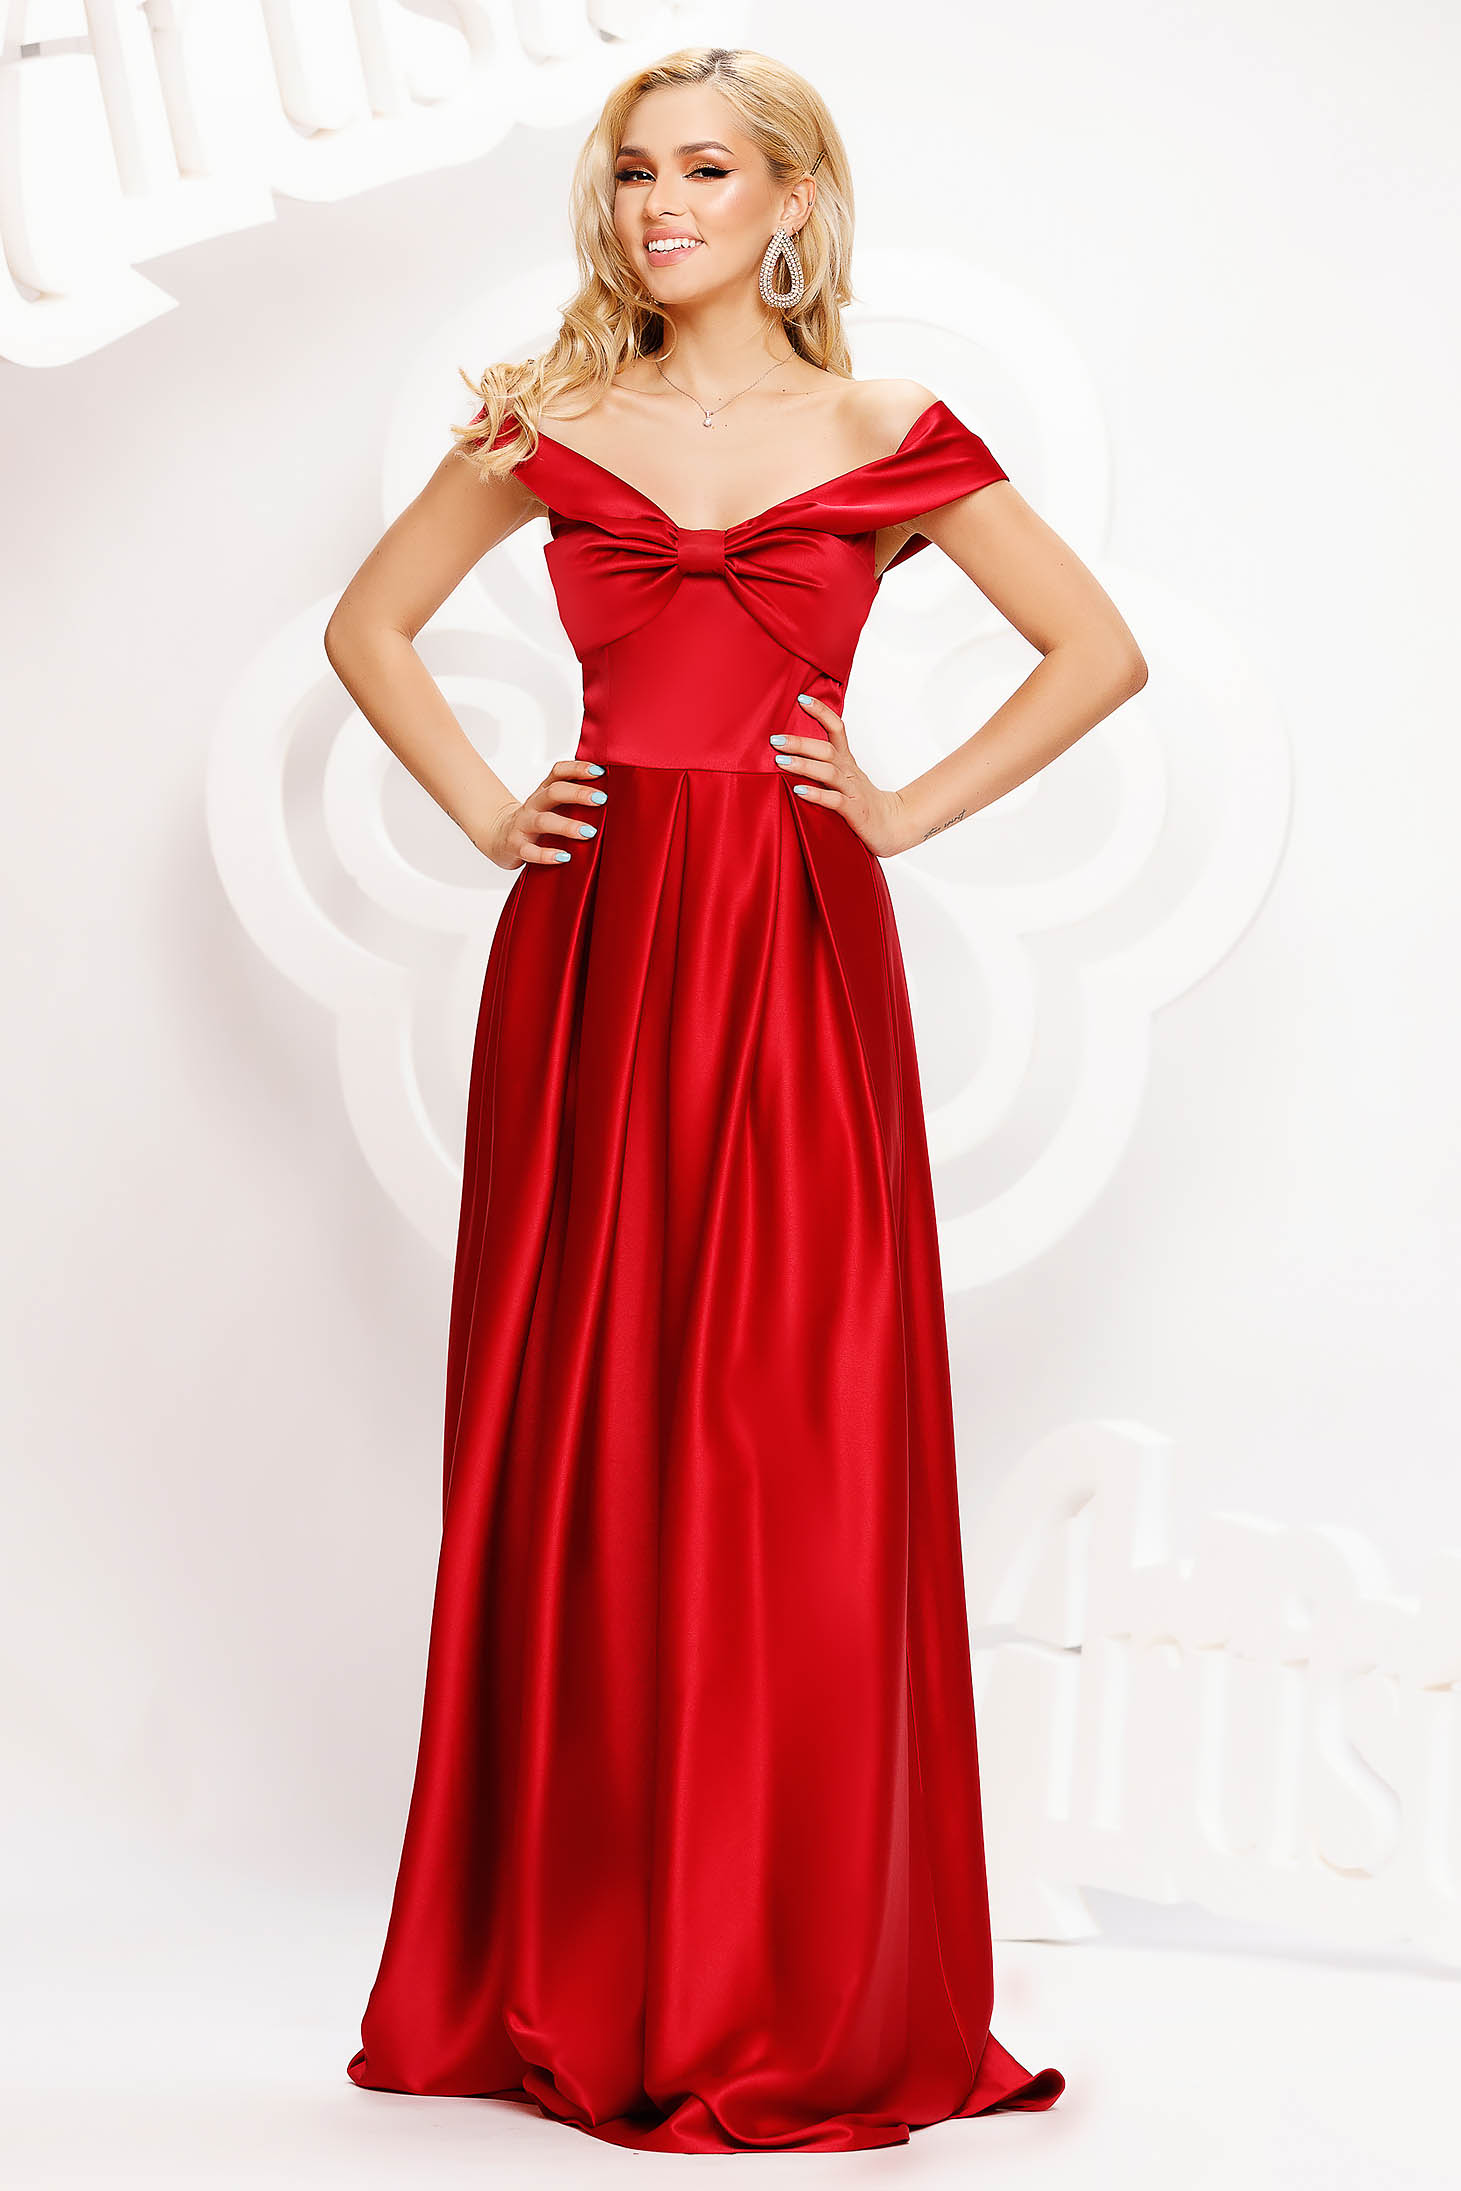 Burgundy dress long cloche from satin naked shoulders with bow